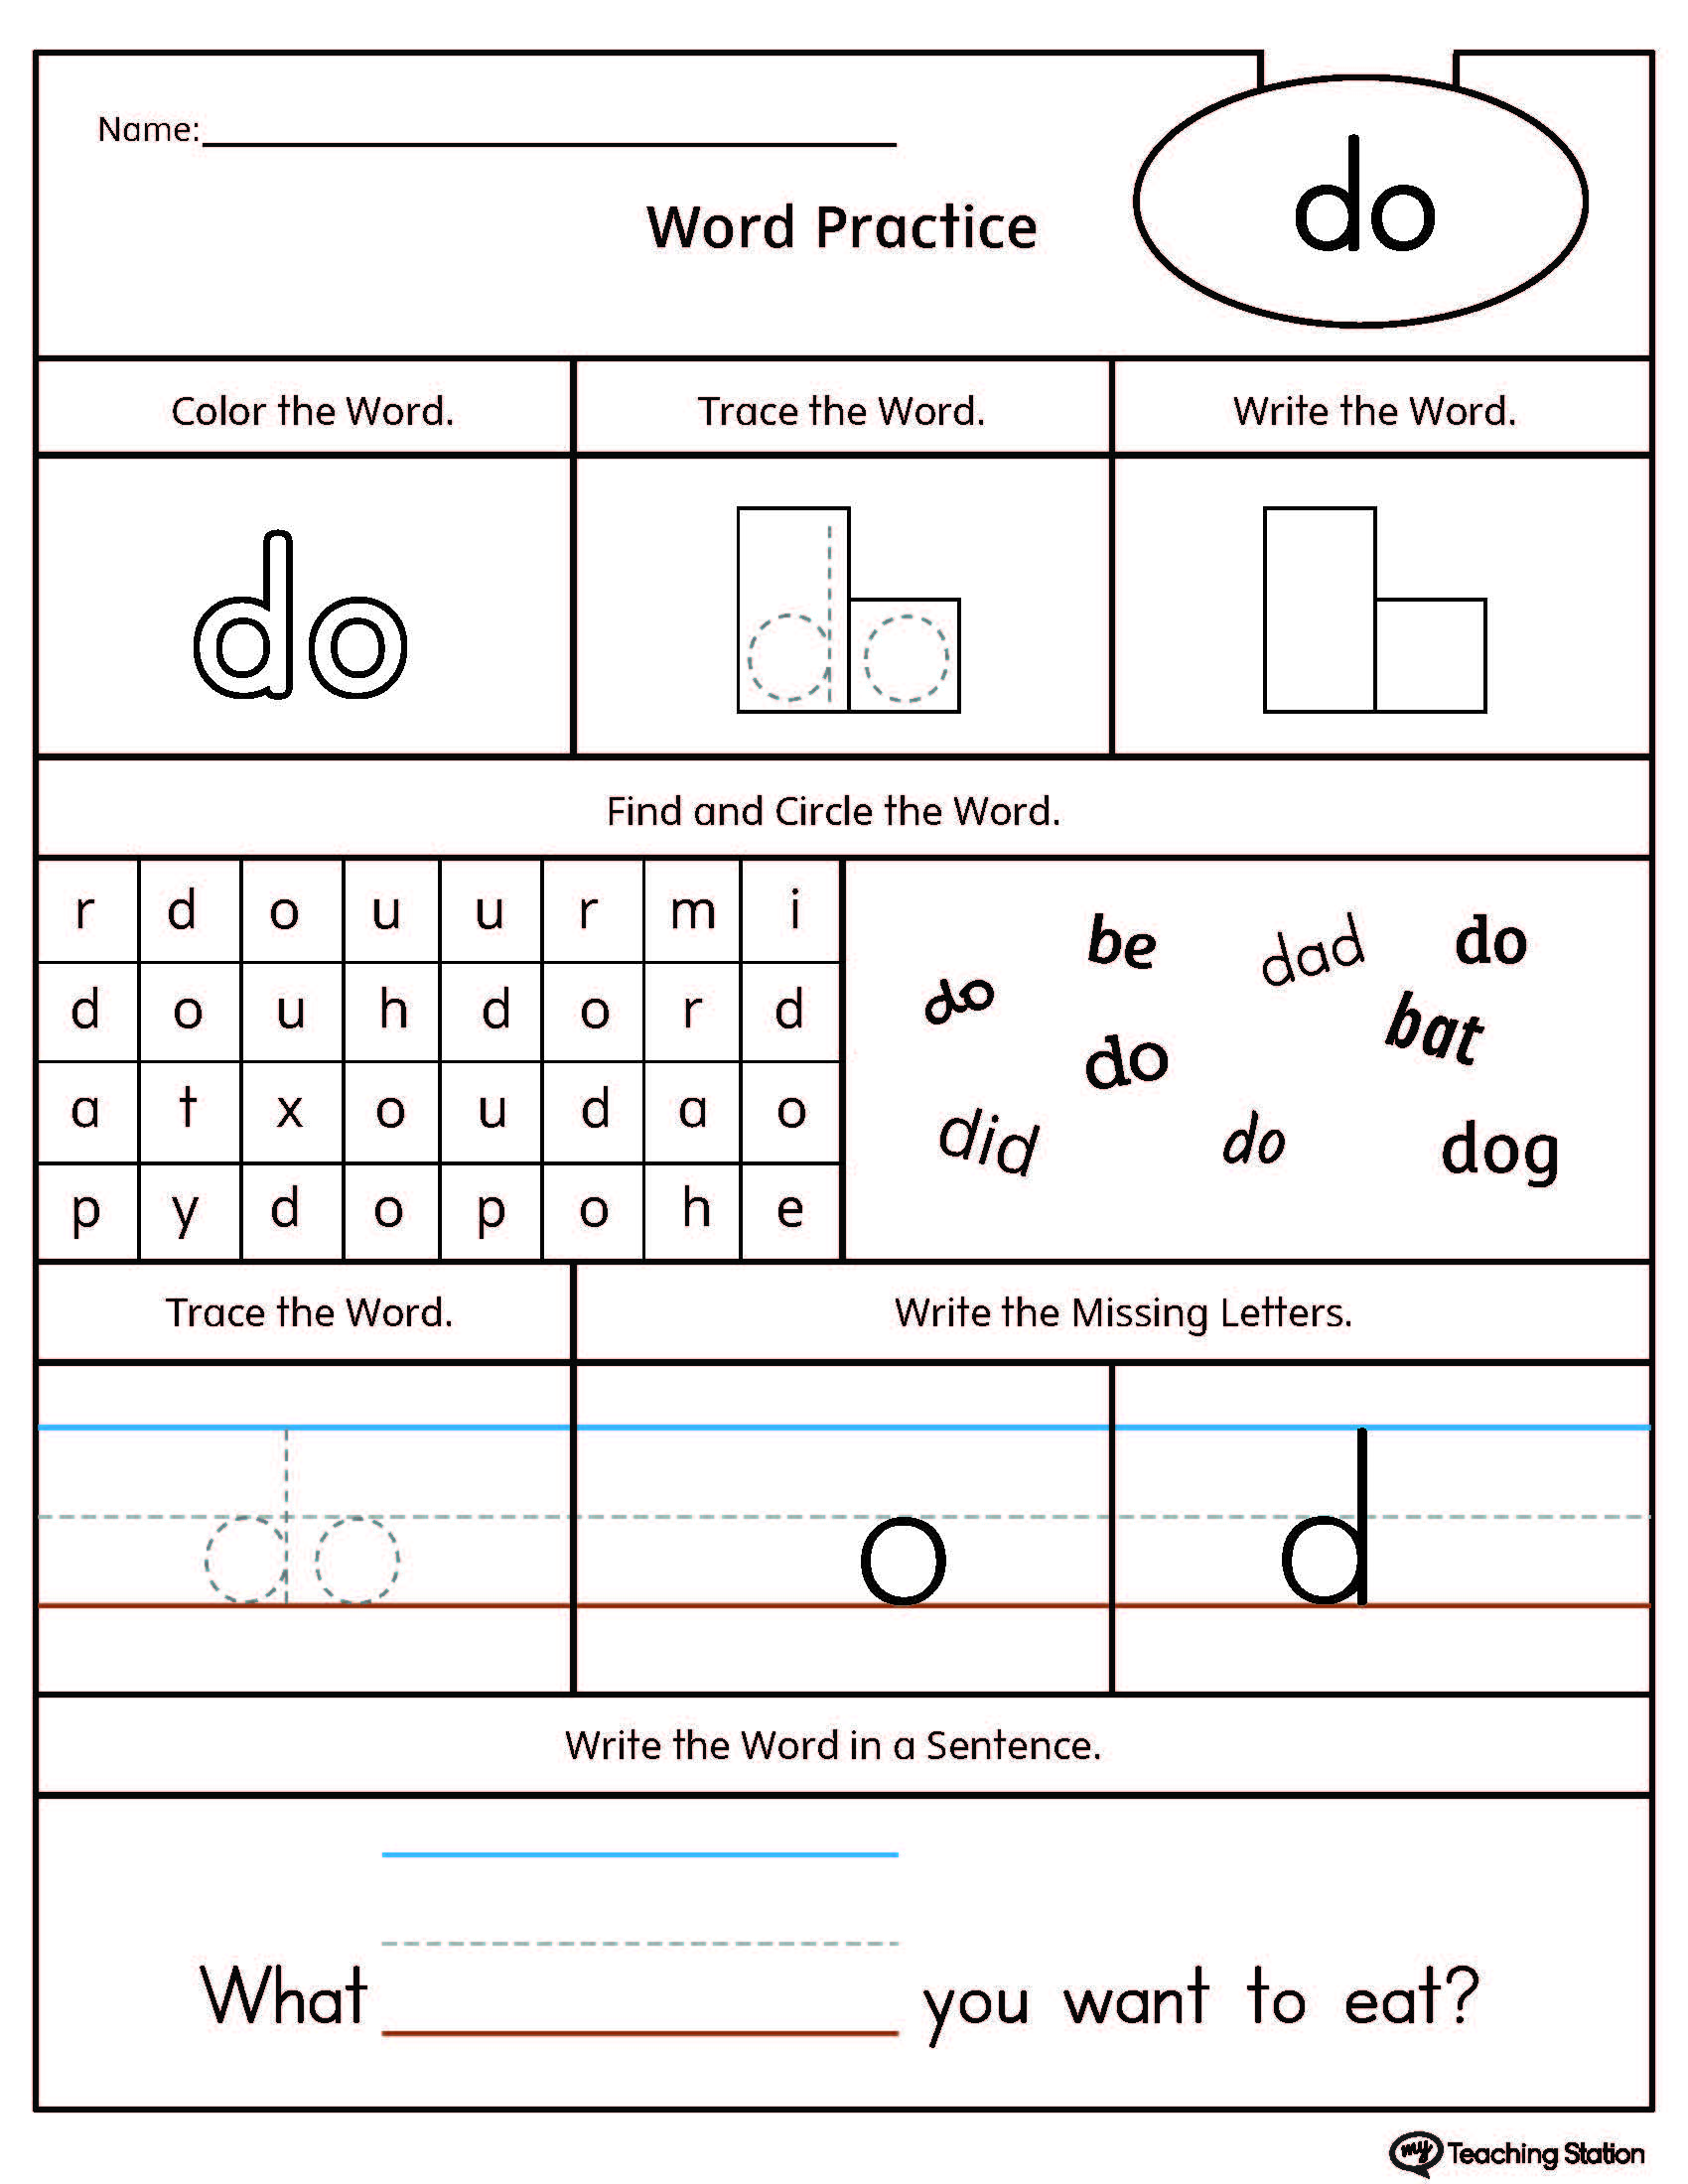 Worksheets Sight Words Worksheets Free high frequency words printable worksheets myteachingstation com word do worksheet